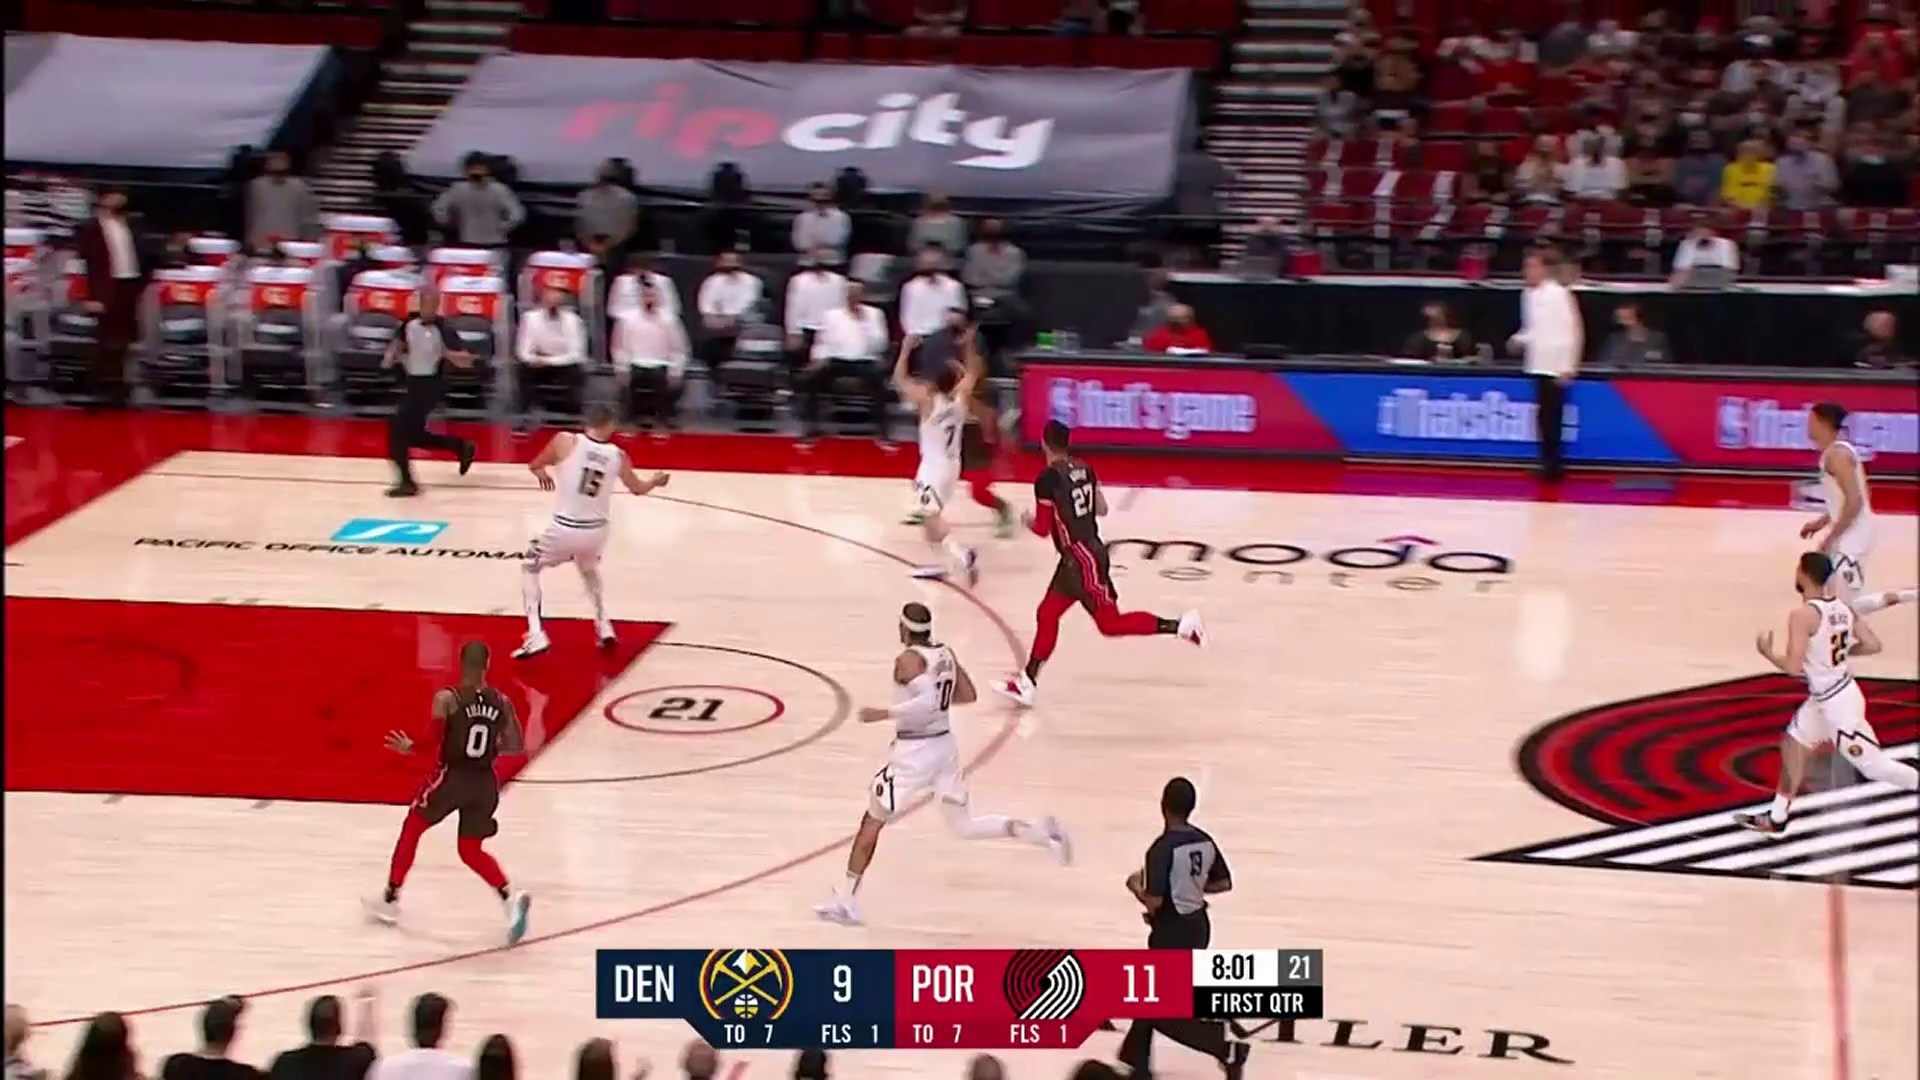 Norman Powell leaves his defender in the dust and hits the three